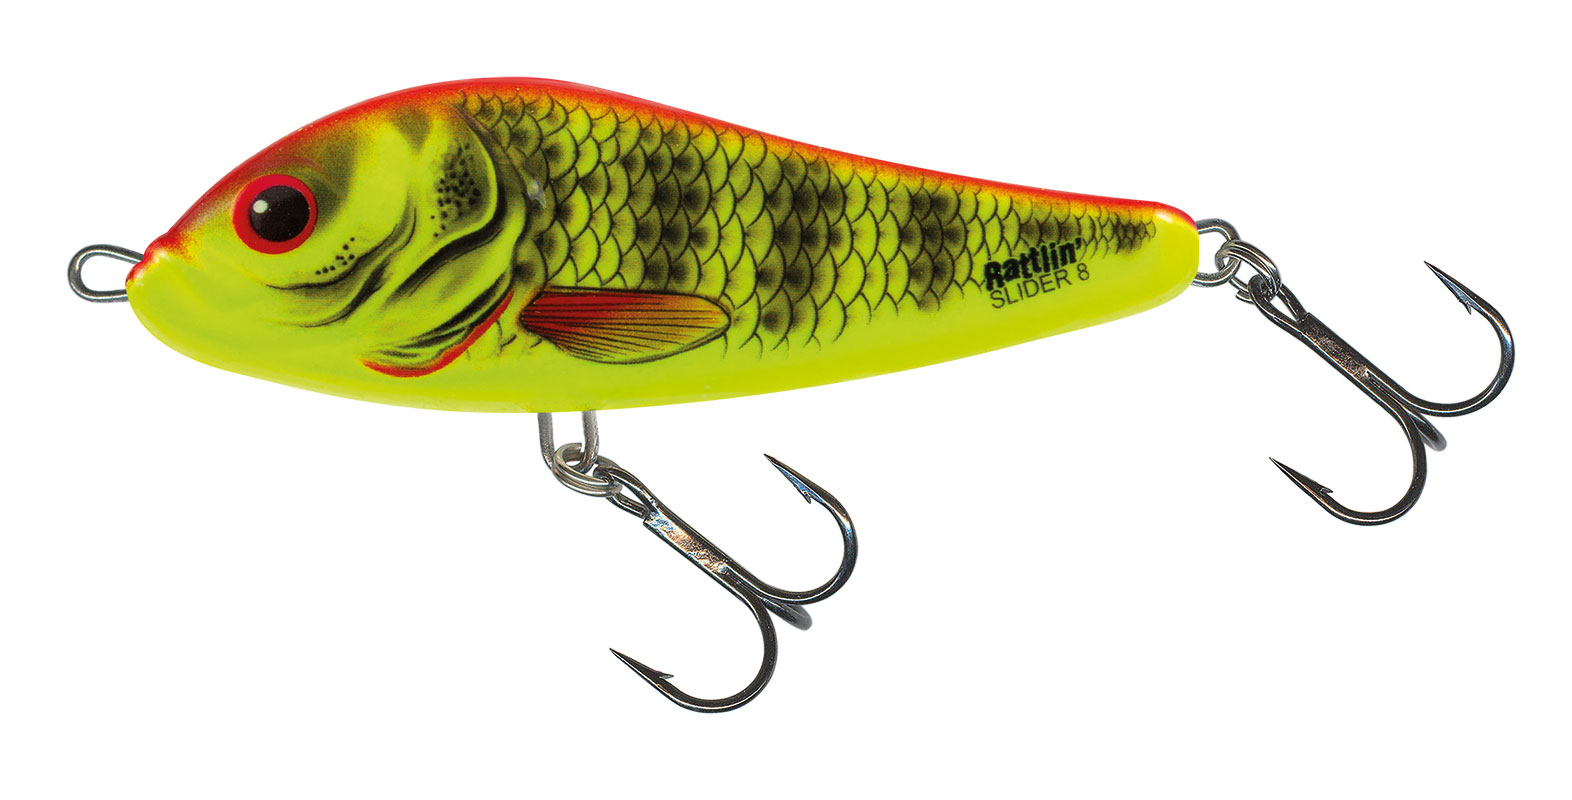 Rattlin' Slider 11cm BRIGHT PERCH